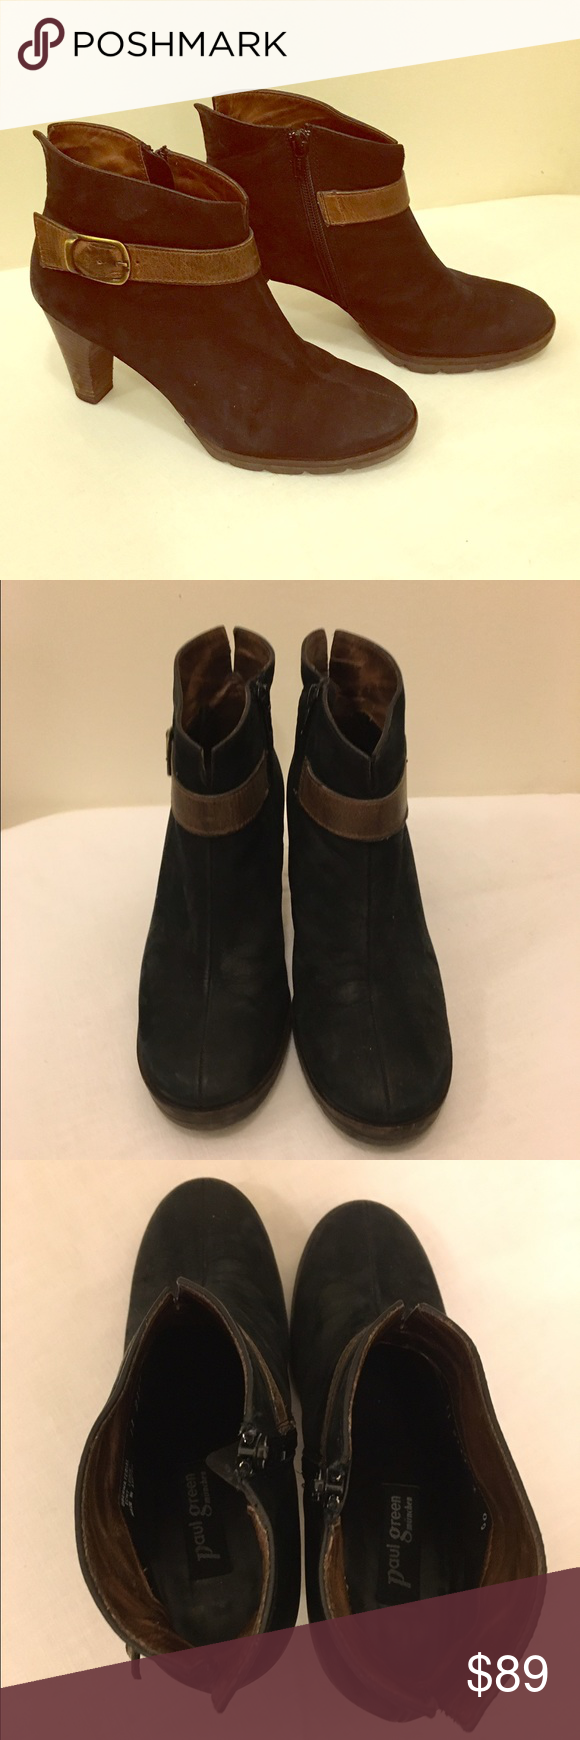 28616516e High quality leather, sturdy heel and great sole. A very high end Nordstrom  shoe! Size 4 women's Paul Green Shoes Ankle Boots & Booties